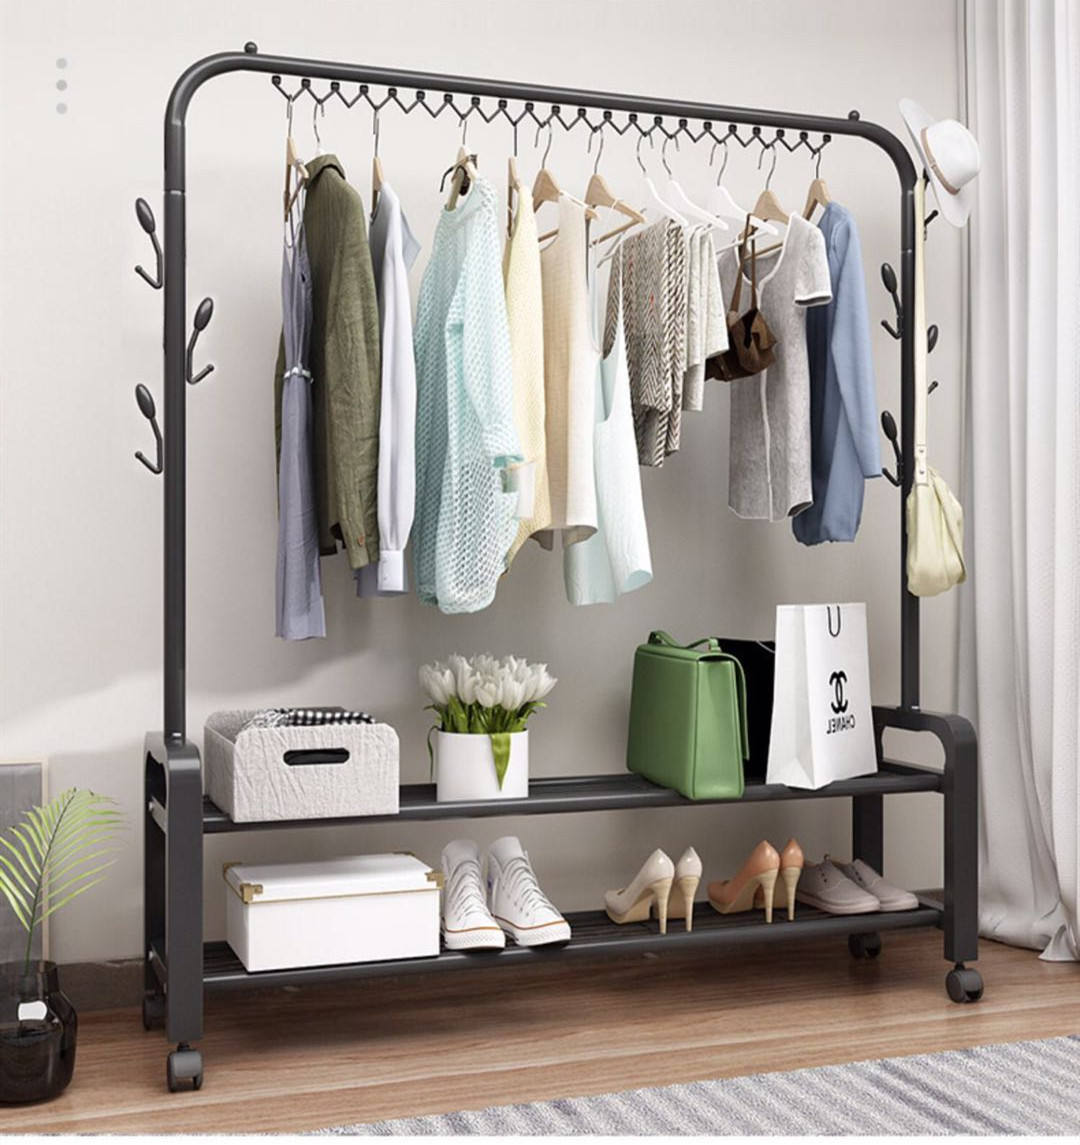 Wholesale New Design Clothes Rack Coat Hanger Stand Stainless Steel Clothes Drying Rack Bag Shoes Storage Hat Hanging shelf